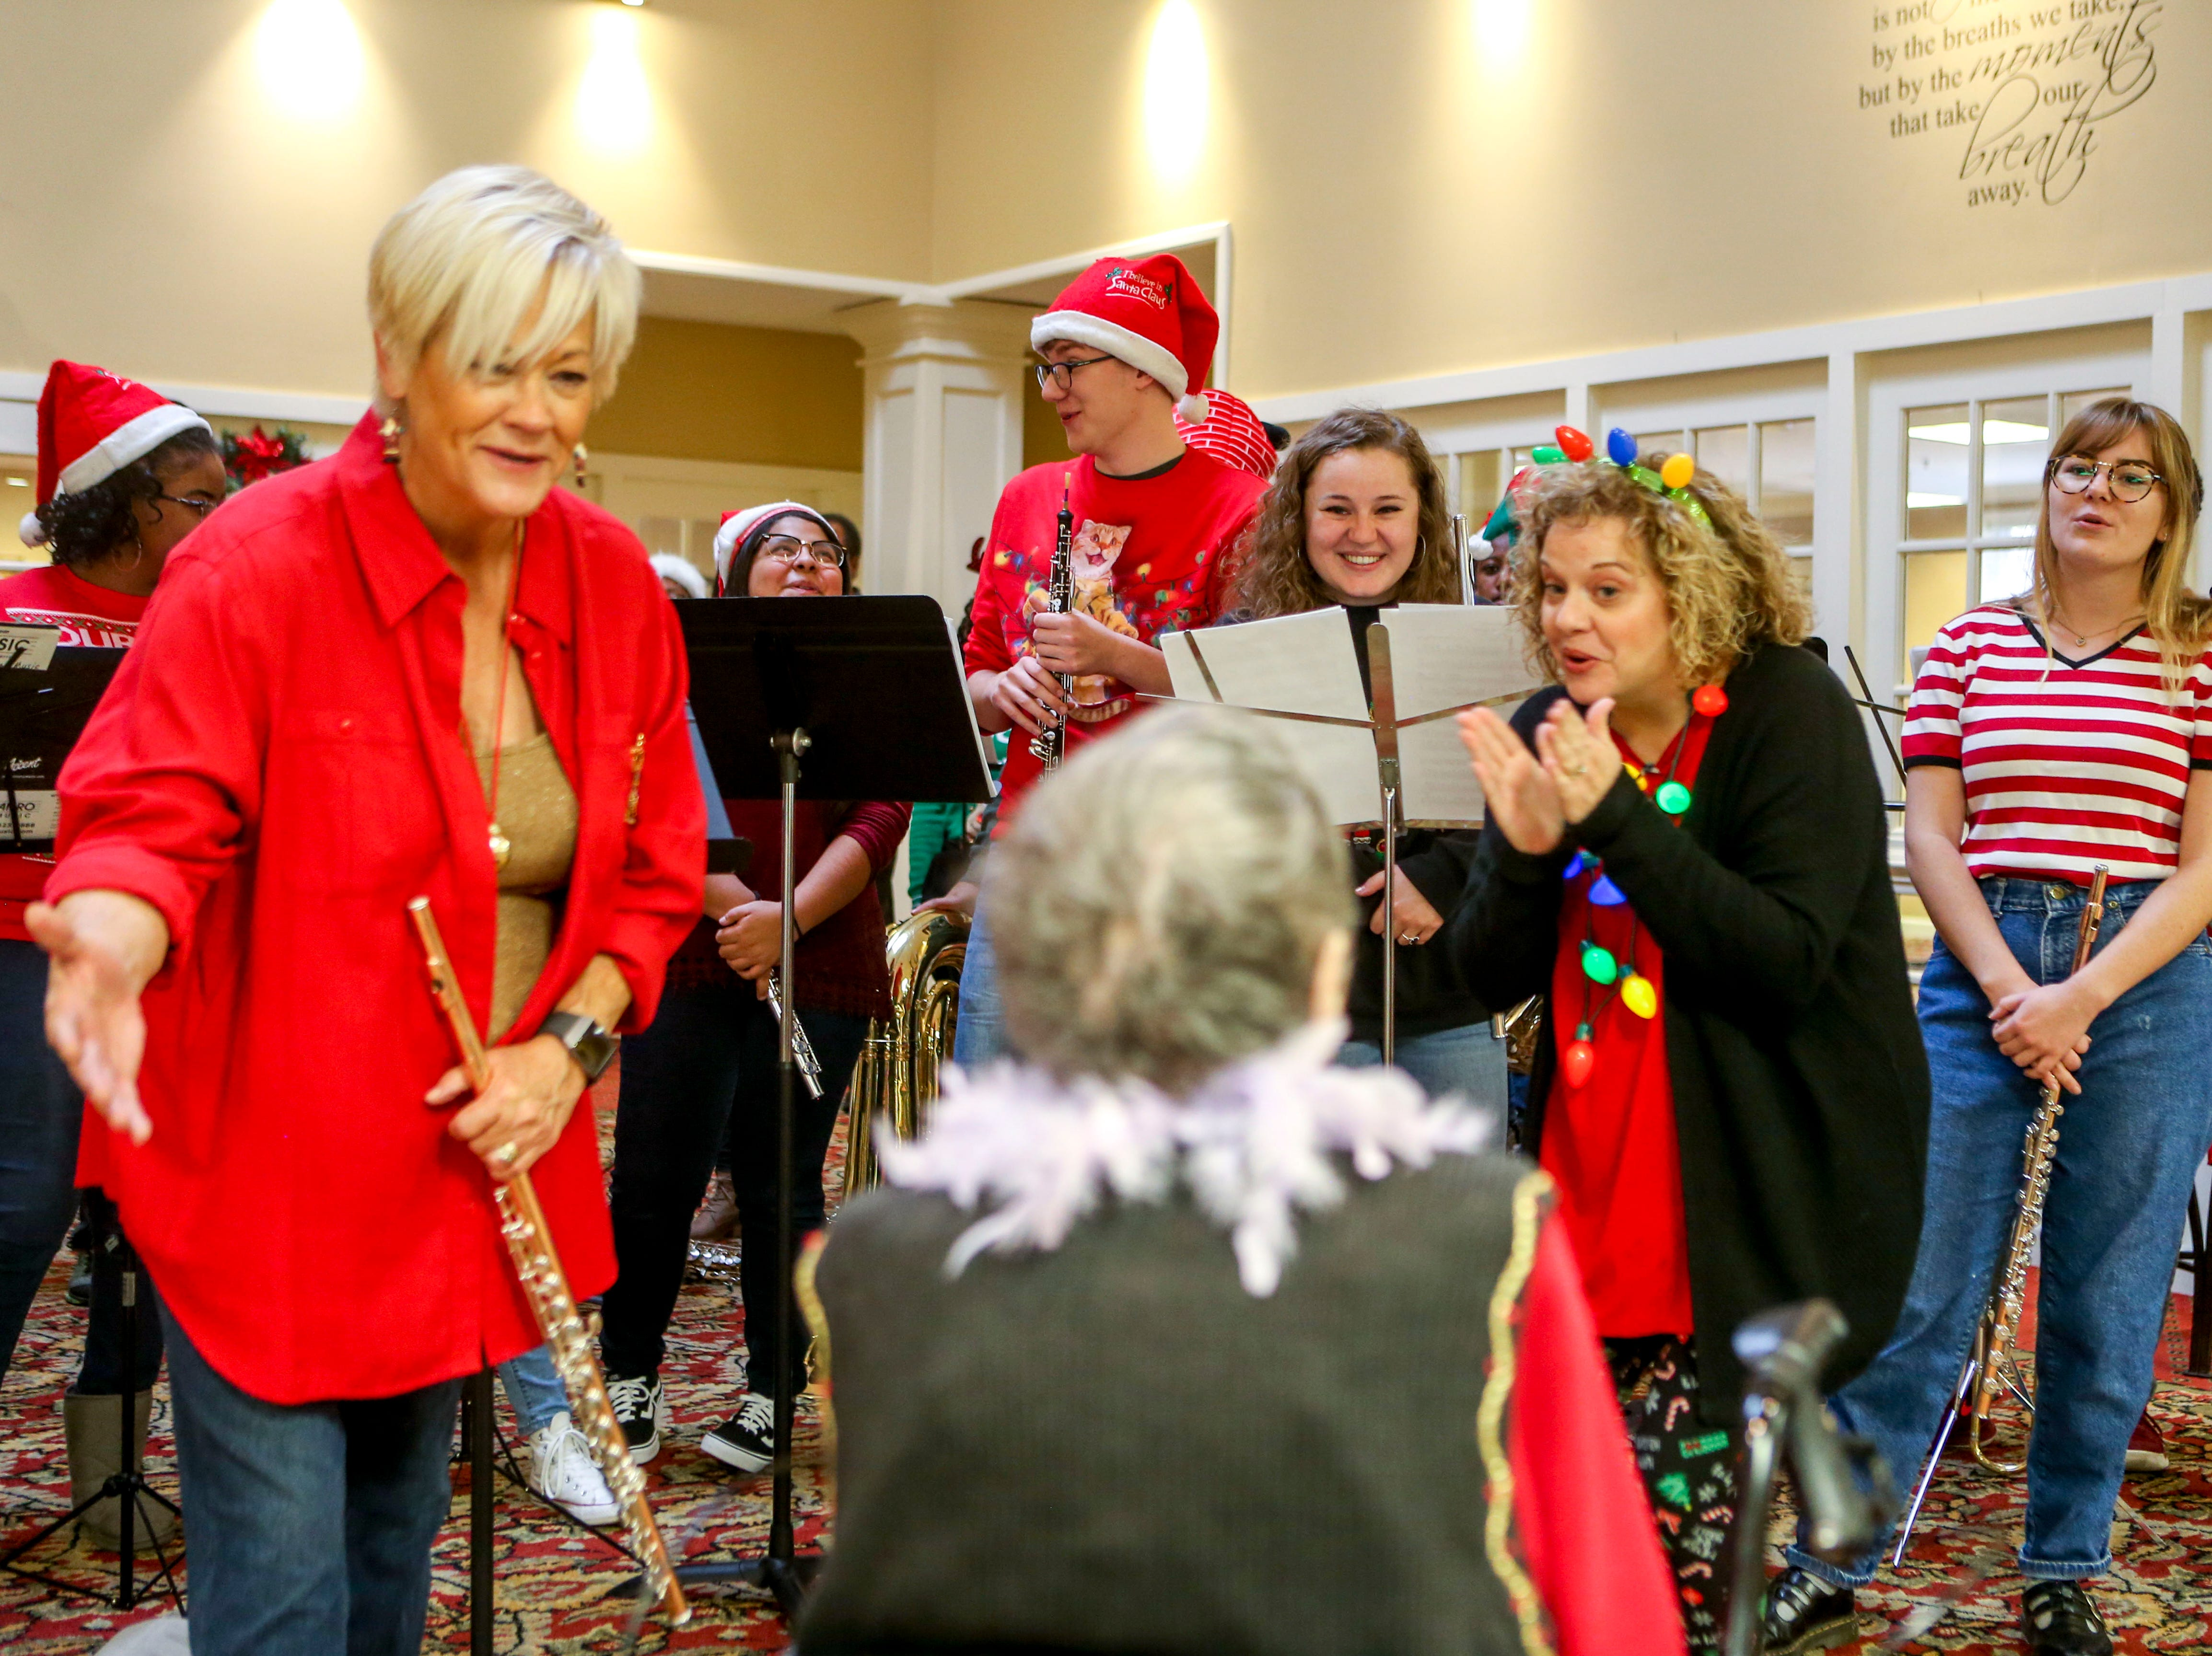 The Madison Academic High School band and choir sing happy birthday to Ida Feldman, who celebrated her 100th birthday the same day the students visited to sing Christmas carols to residents at Regency Retirement Home in Jackson, Tenn., on Thursday, Dec. 20, 2018.